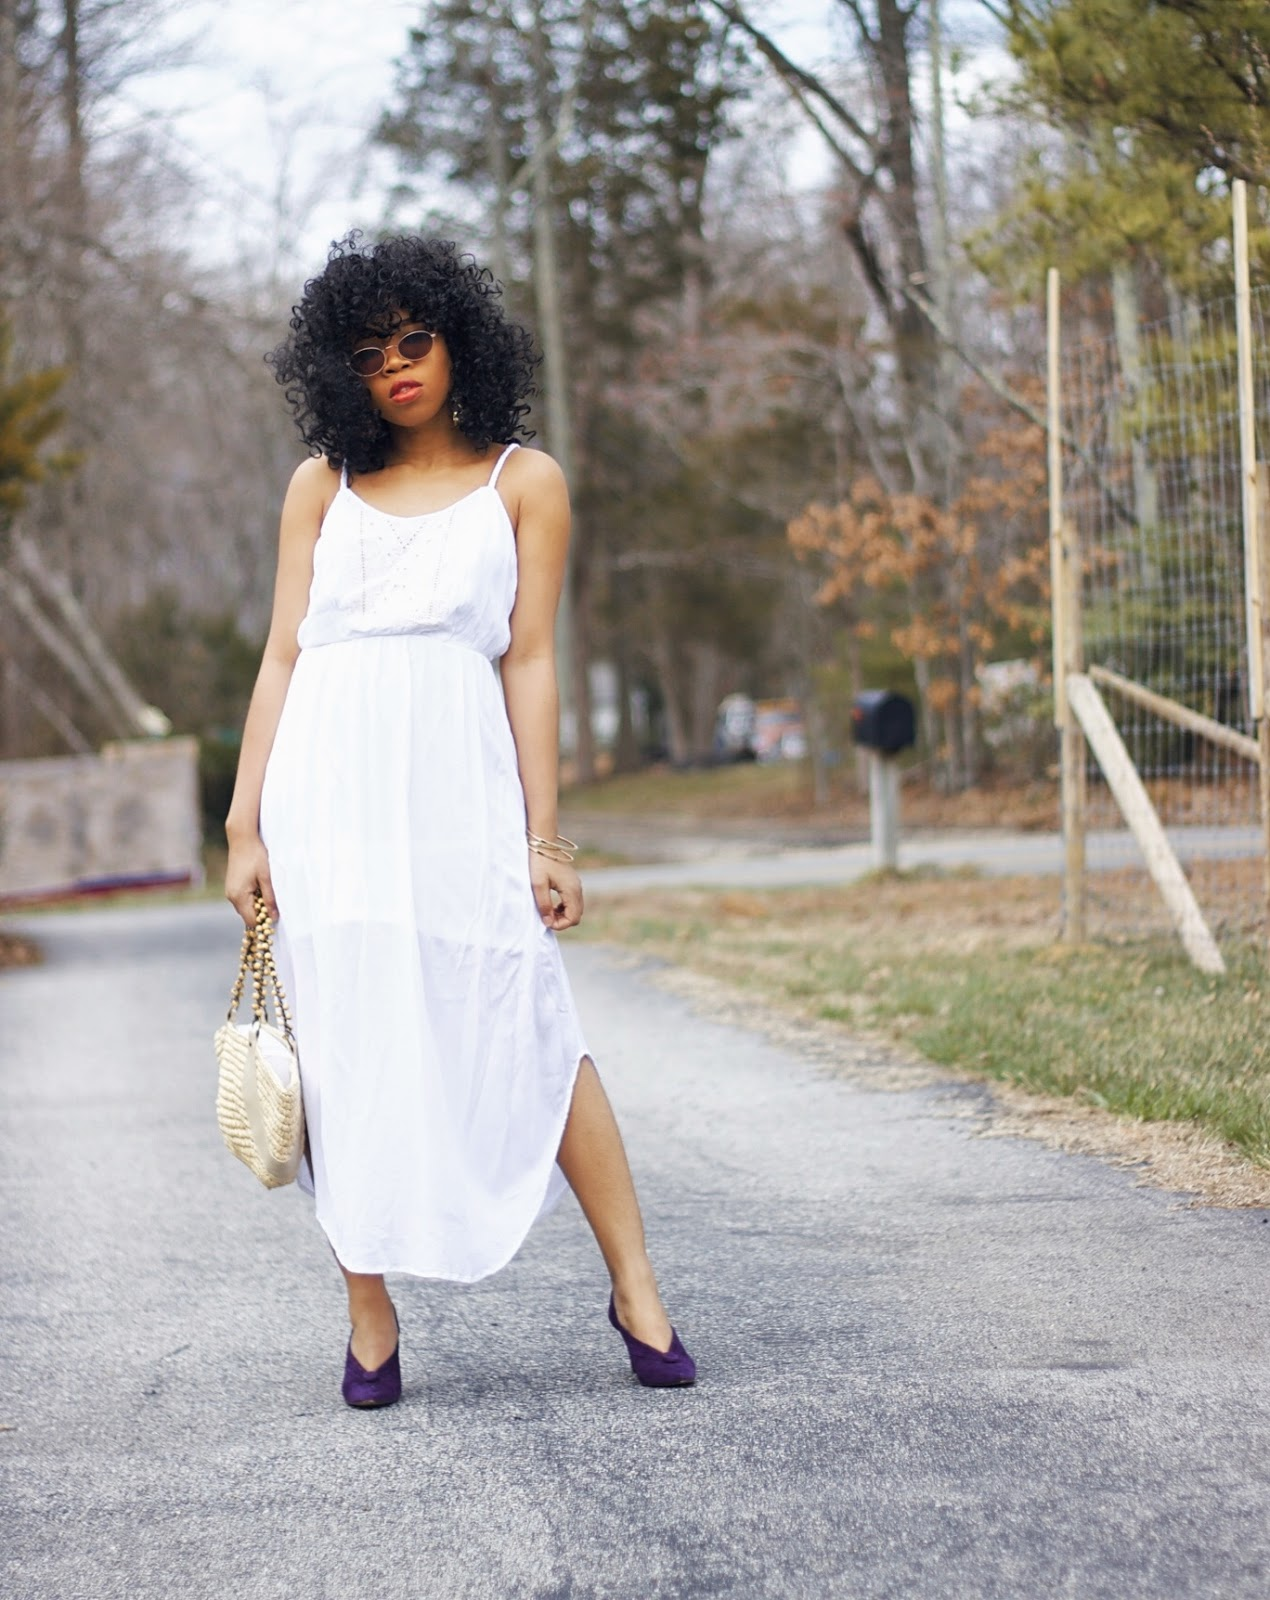 HOW TO STYLE A WHITE DRESS FOR SPRING